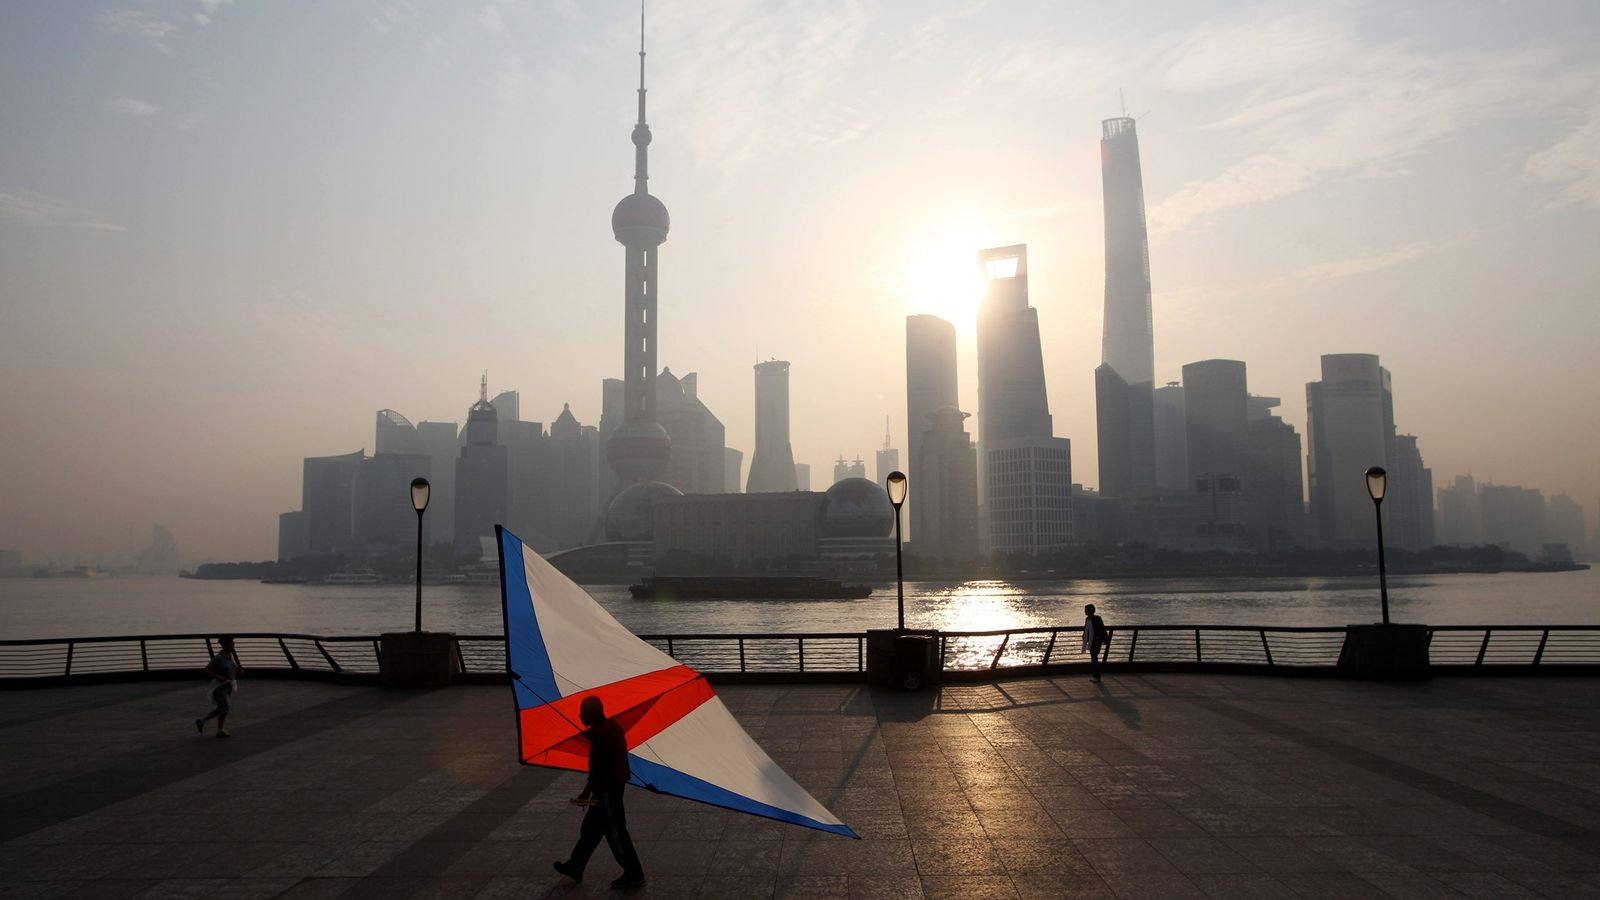 A man carries a large kite at sunrise in front of the distinctive skyline of Pudong, ...